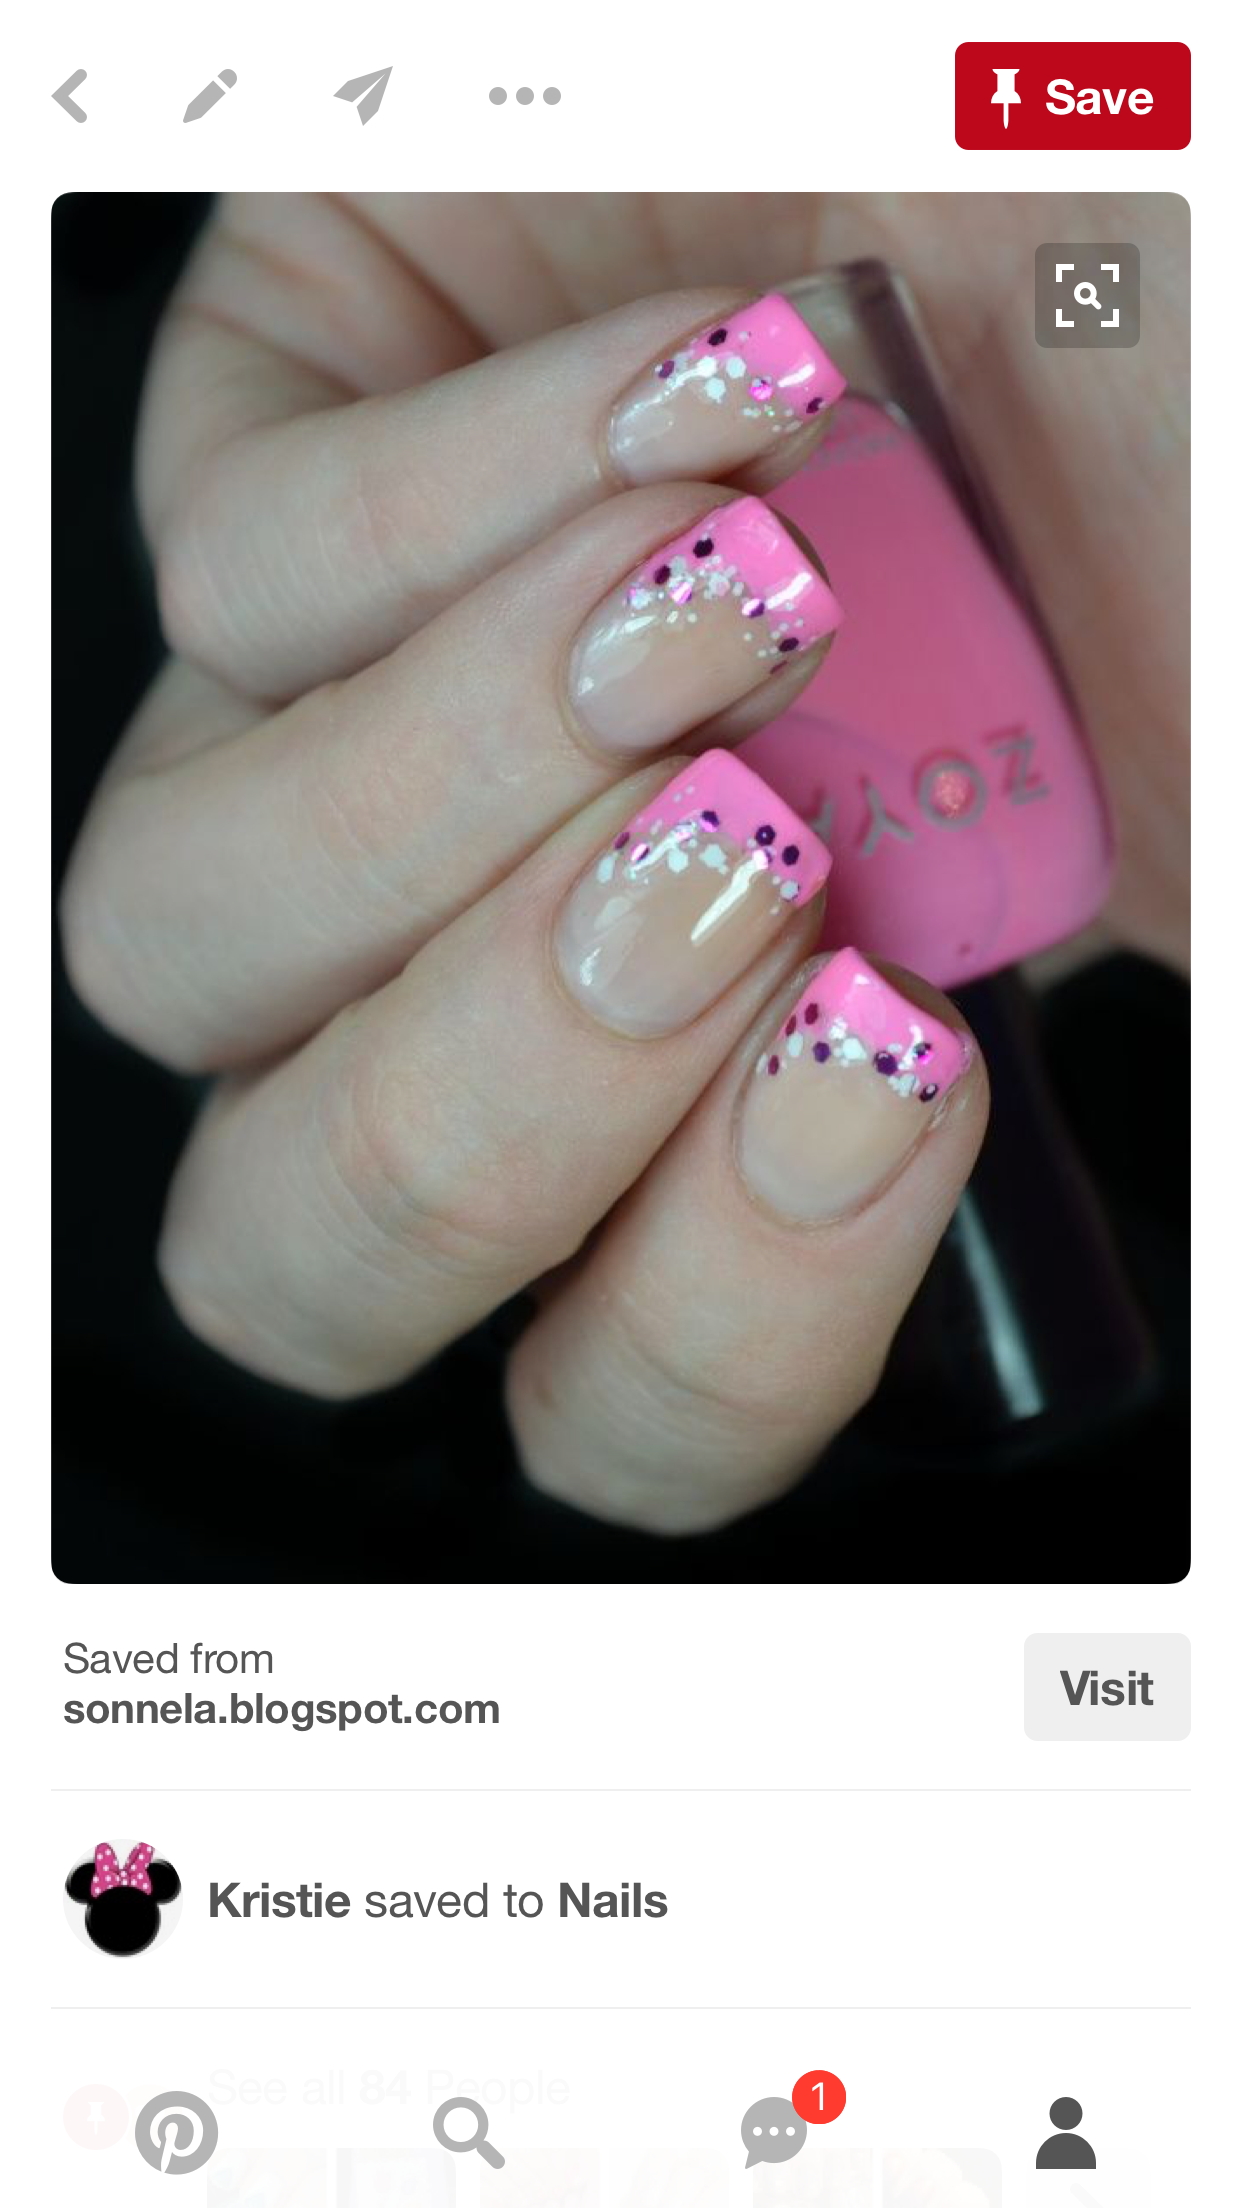 Pin by kristie mcbride on nails pinterest